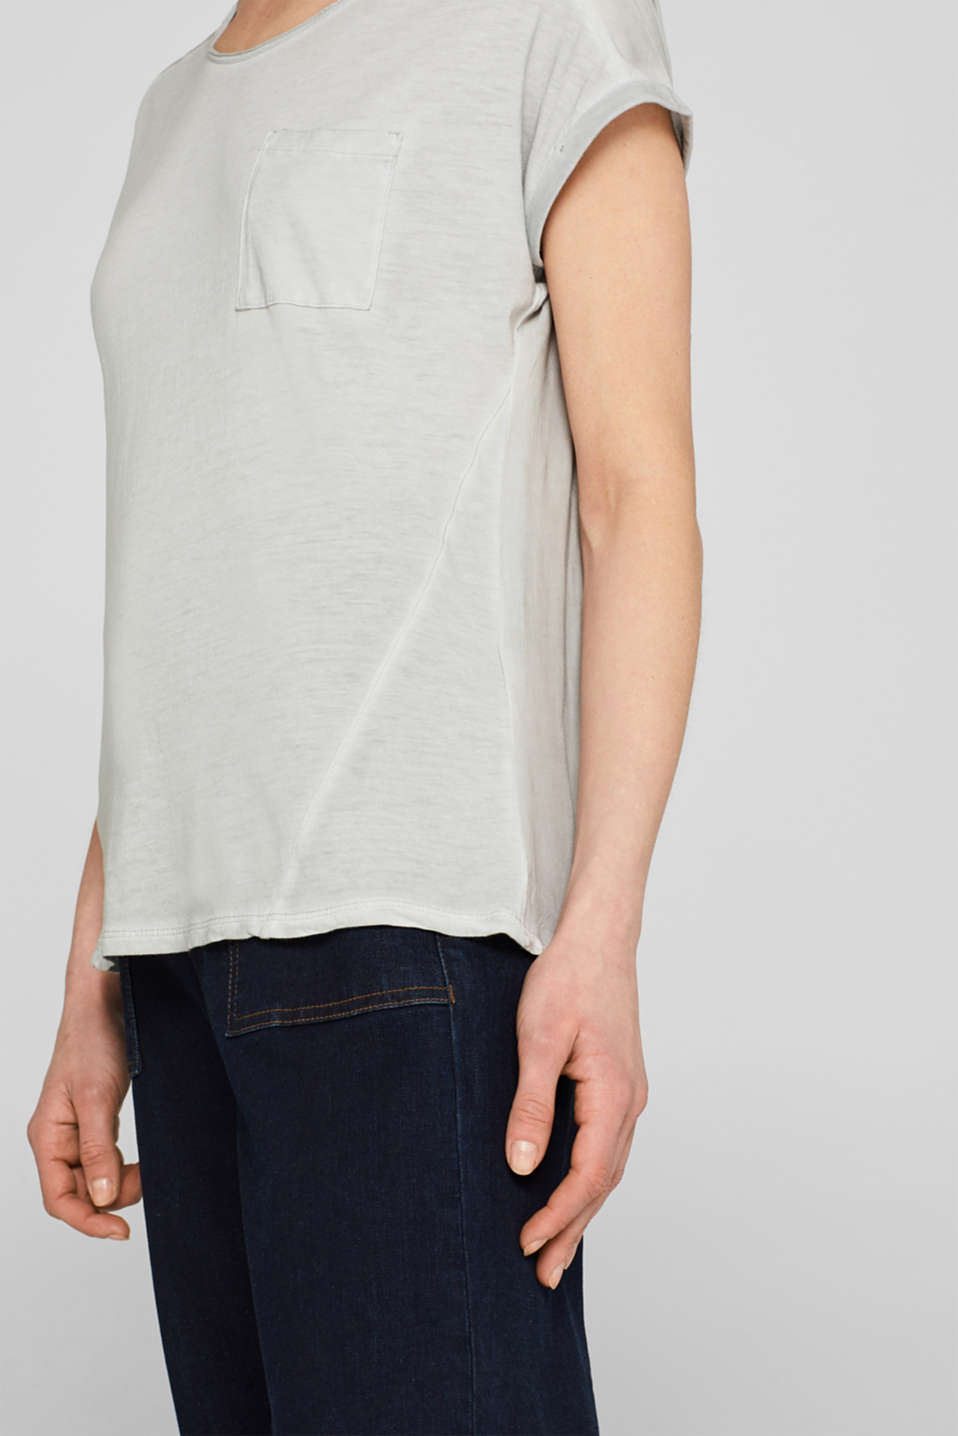 T-shirt in blended fabric with a breast pocket, LIGHT GREY, detail image number 5